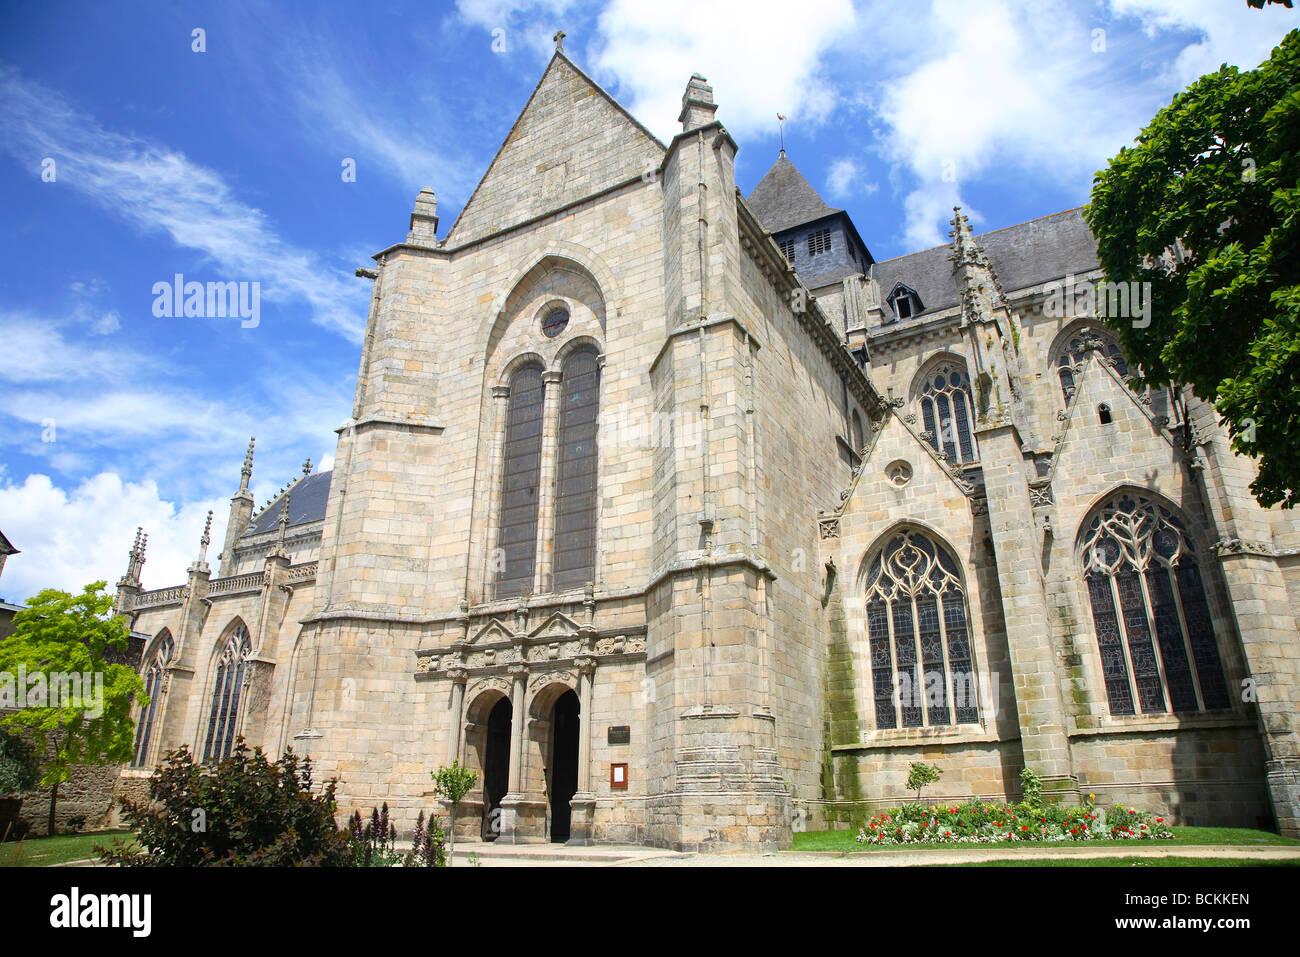 Superior Church News #2: France-brittany-bretagne-dinan-eglise-st-malo-church-saint-malo-BCKKEN.jpg